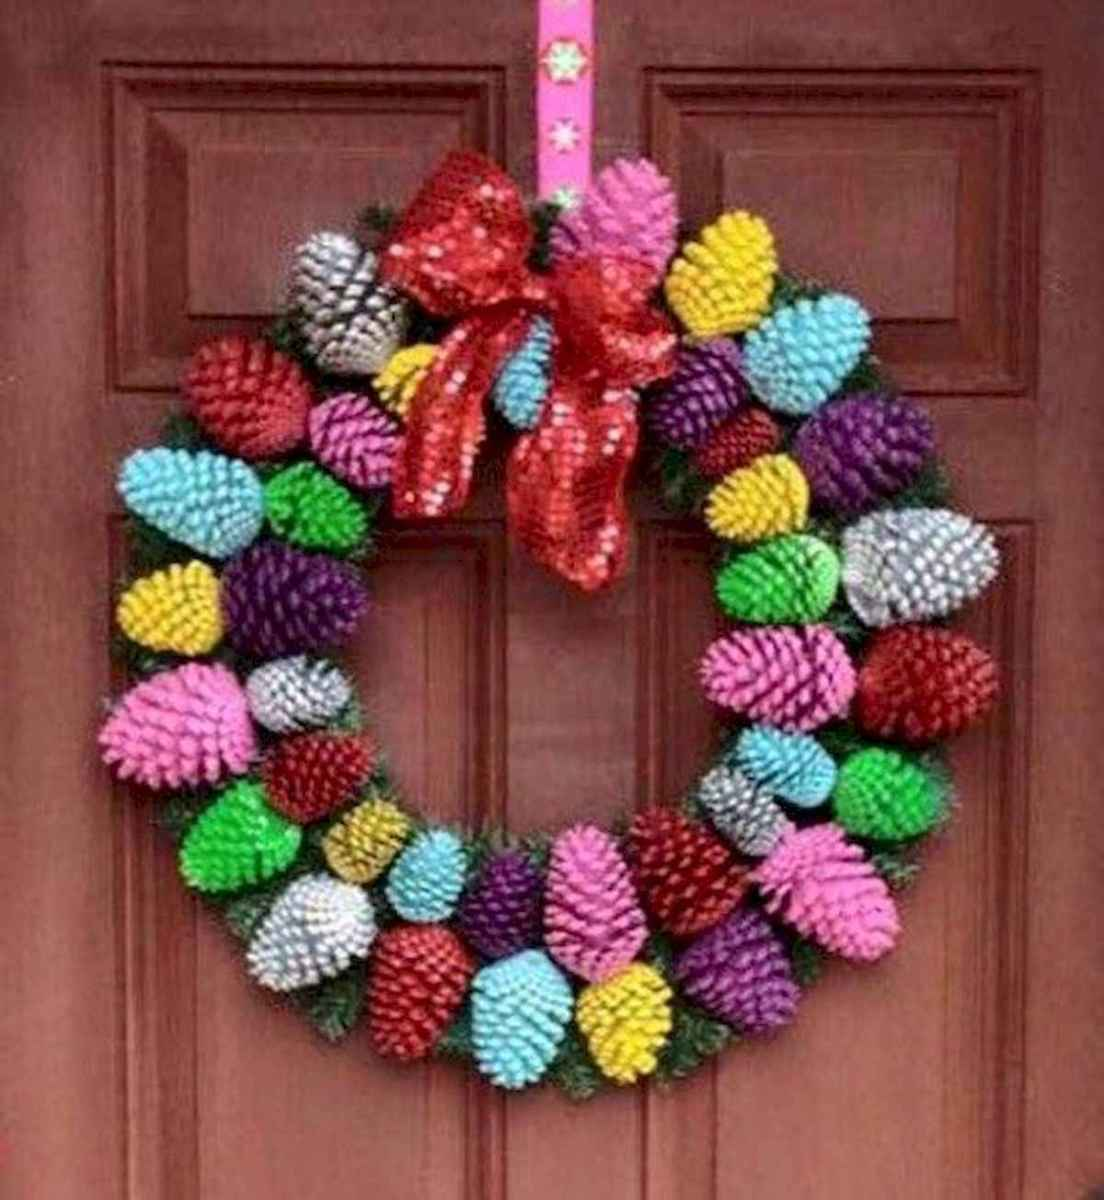 60 Favorite Spring Wreaths for Front Door Design Ideas And Decor (58)